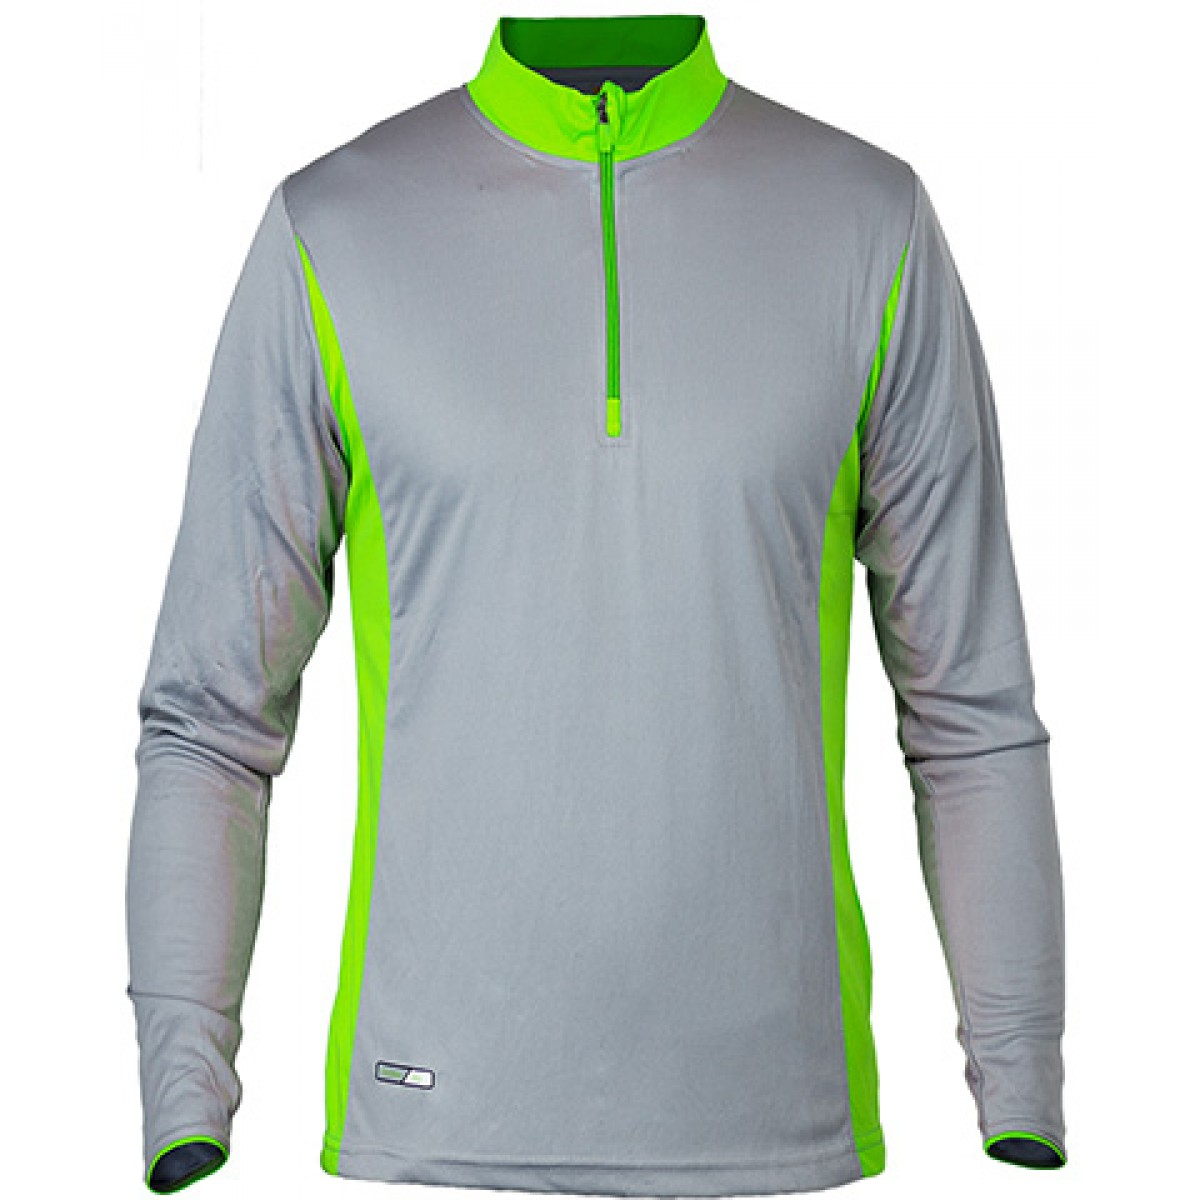 Long Sleeves 3/4 Zip Performance With Side Insert-Neon Green-M